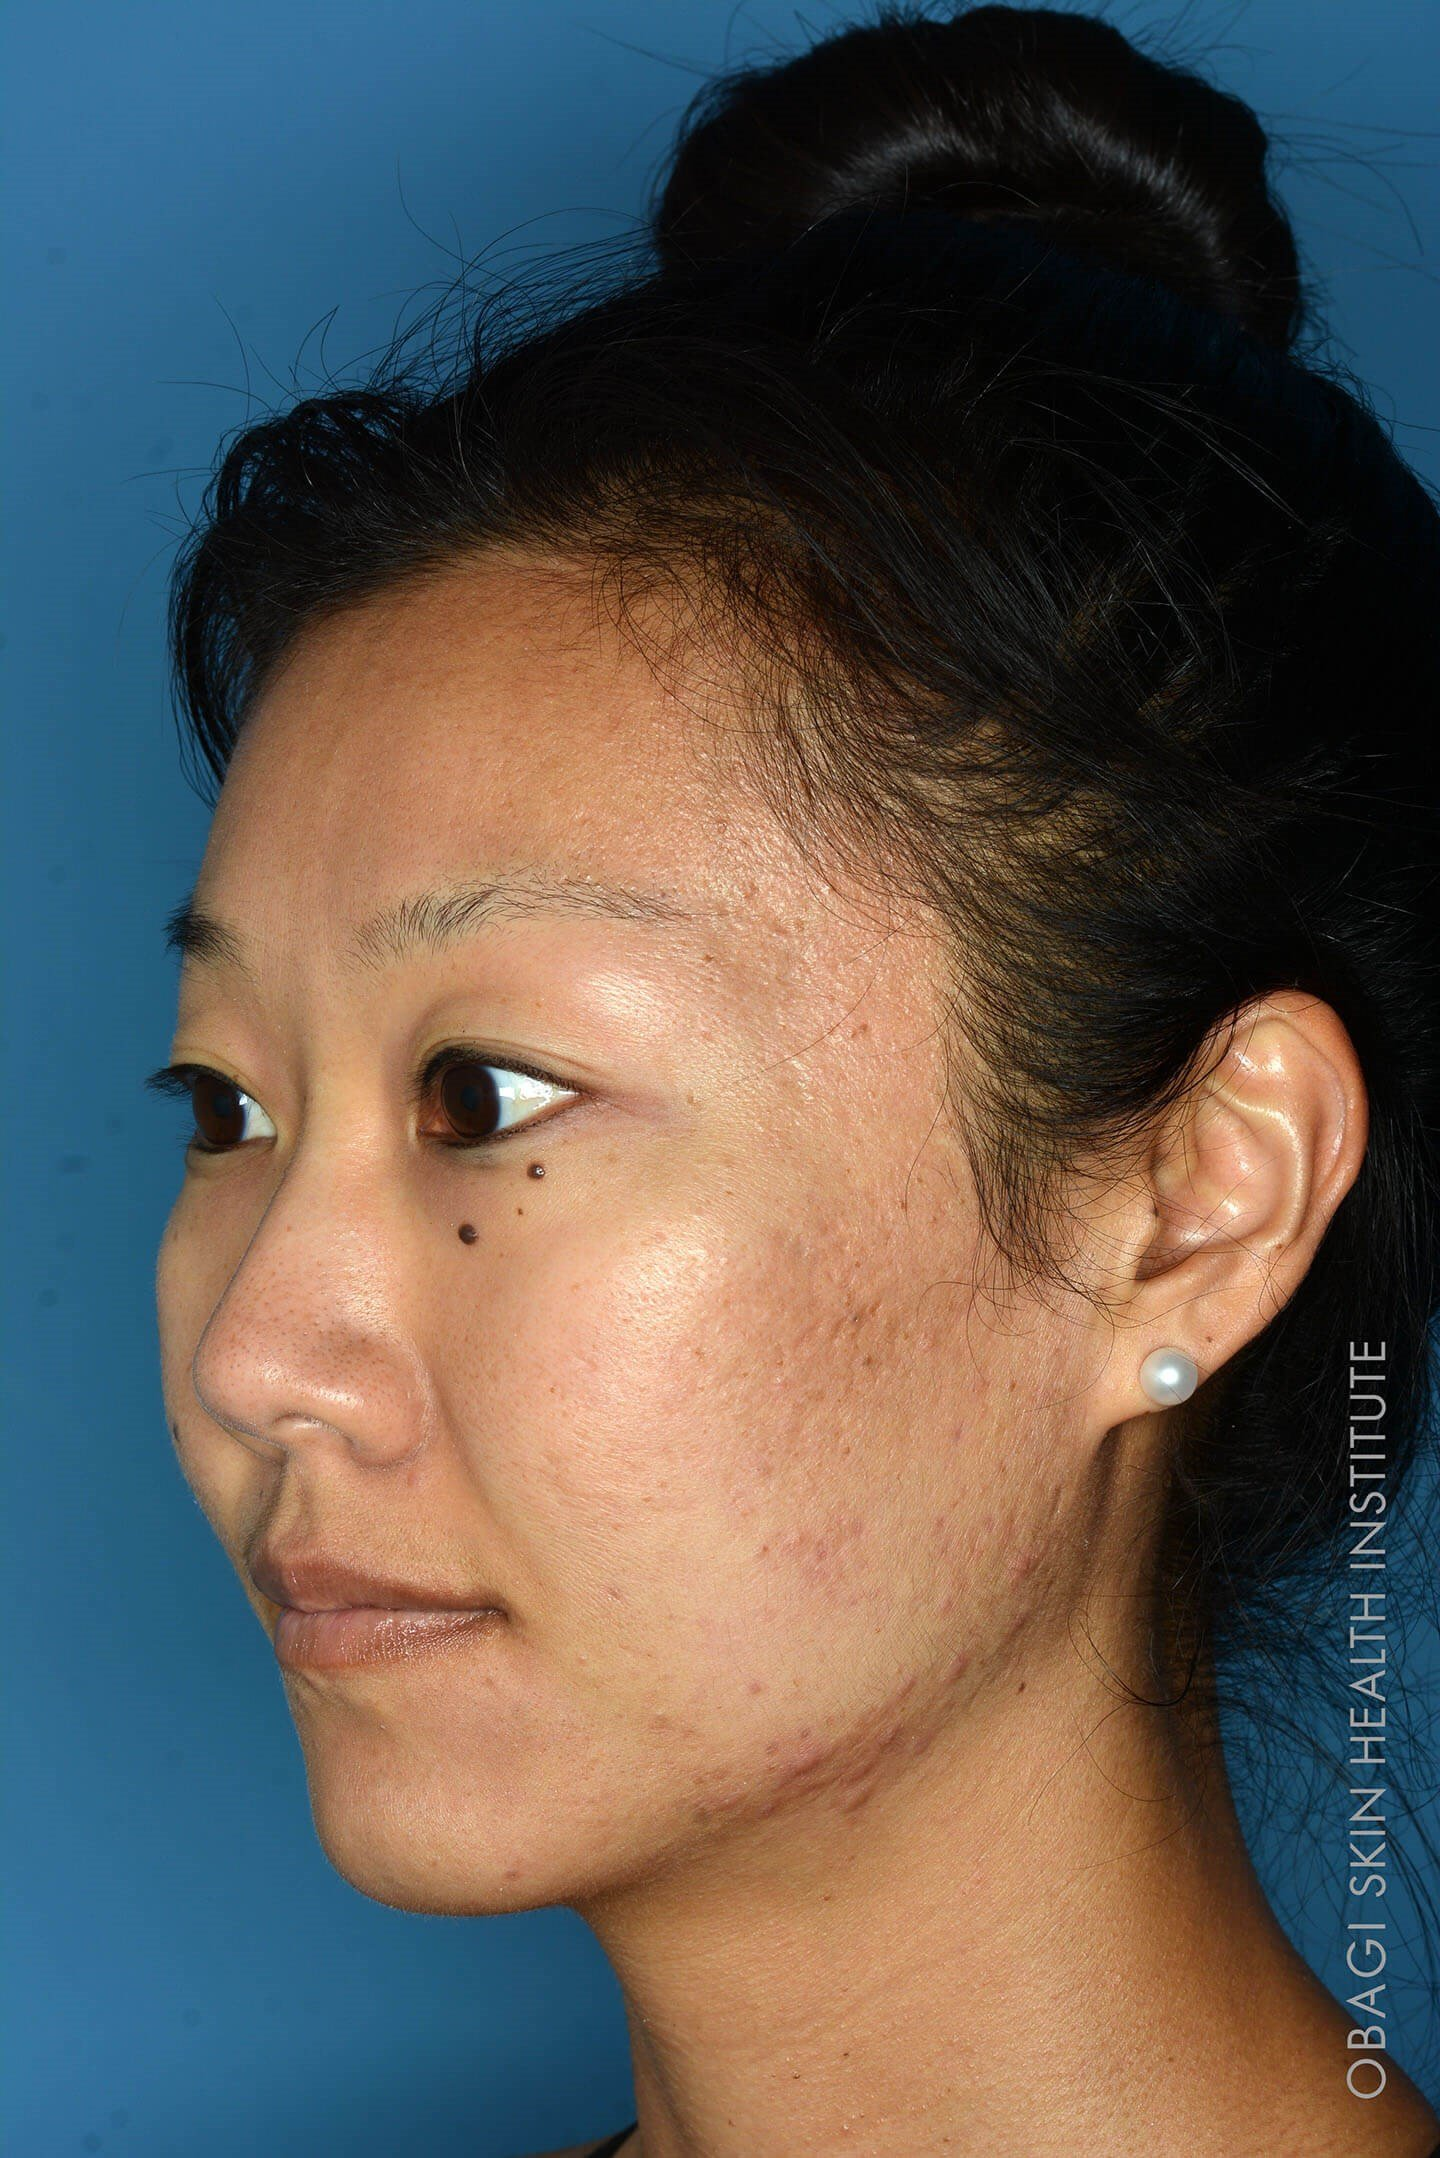 ZO® Custom Peel - Left View Before ZO Customized Treatment